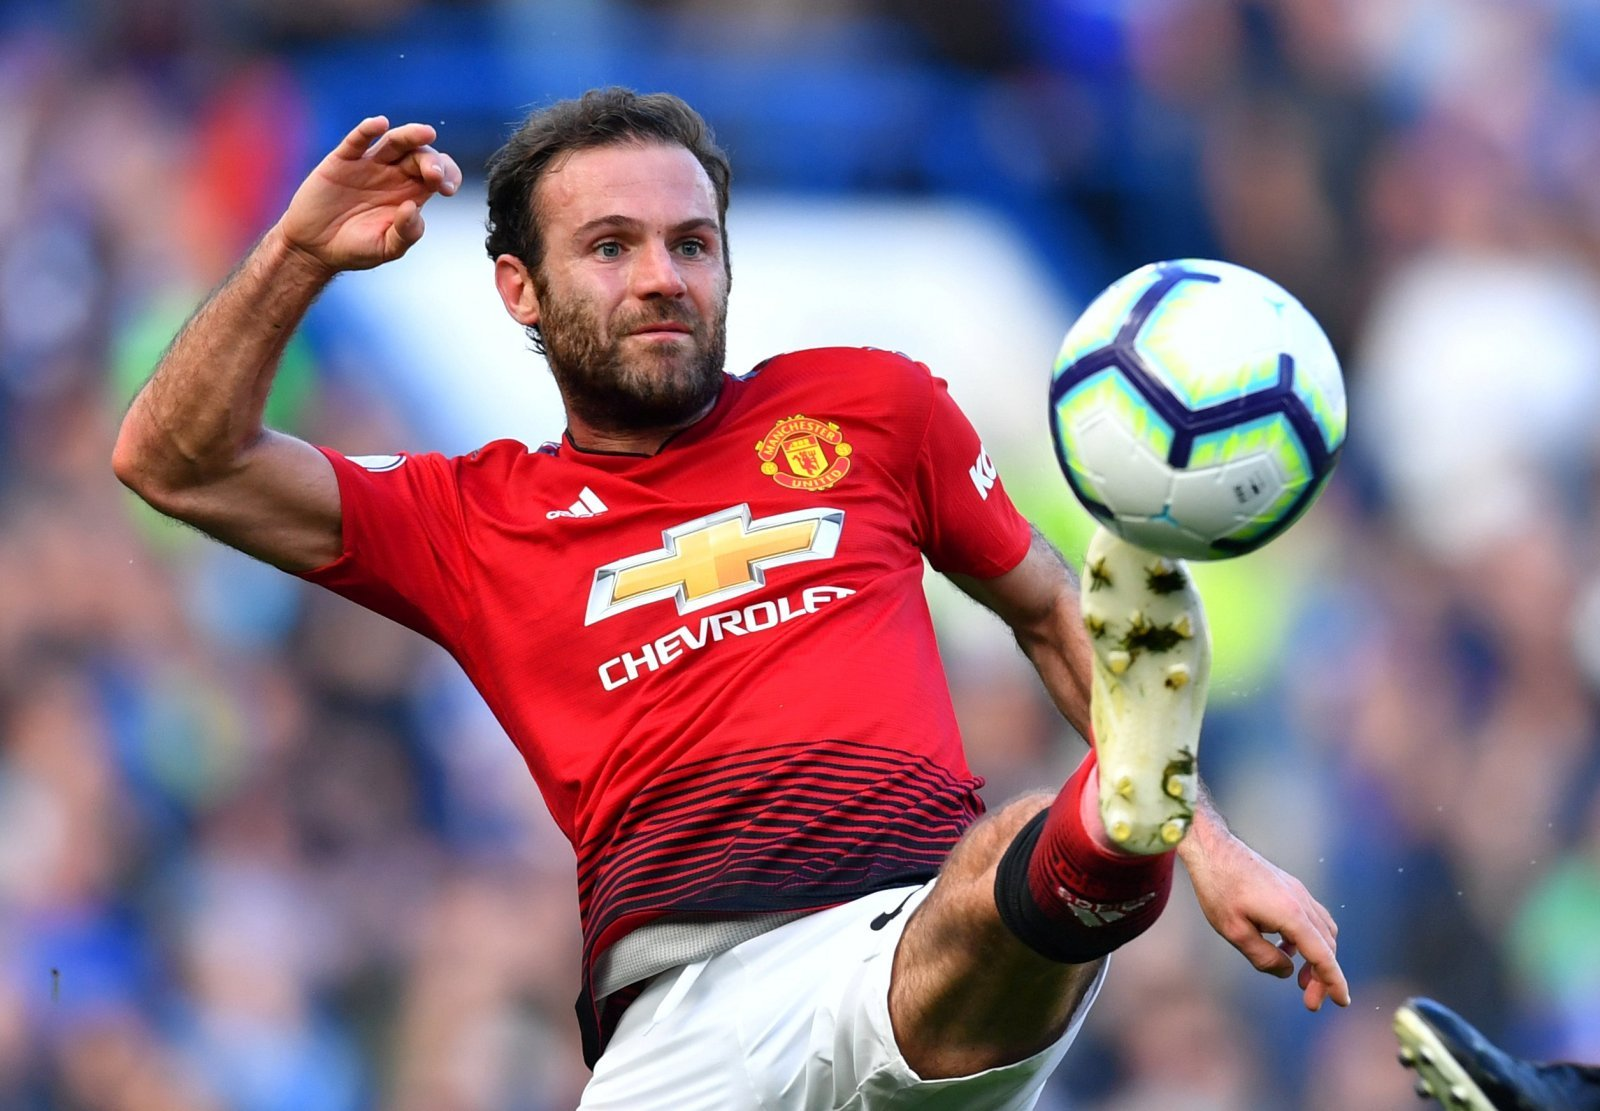 Arsenal move for Juan Mata may help relieve Mesut Ozil of his duties